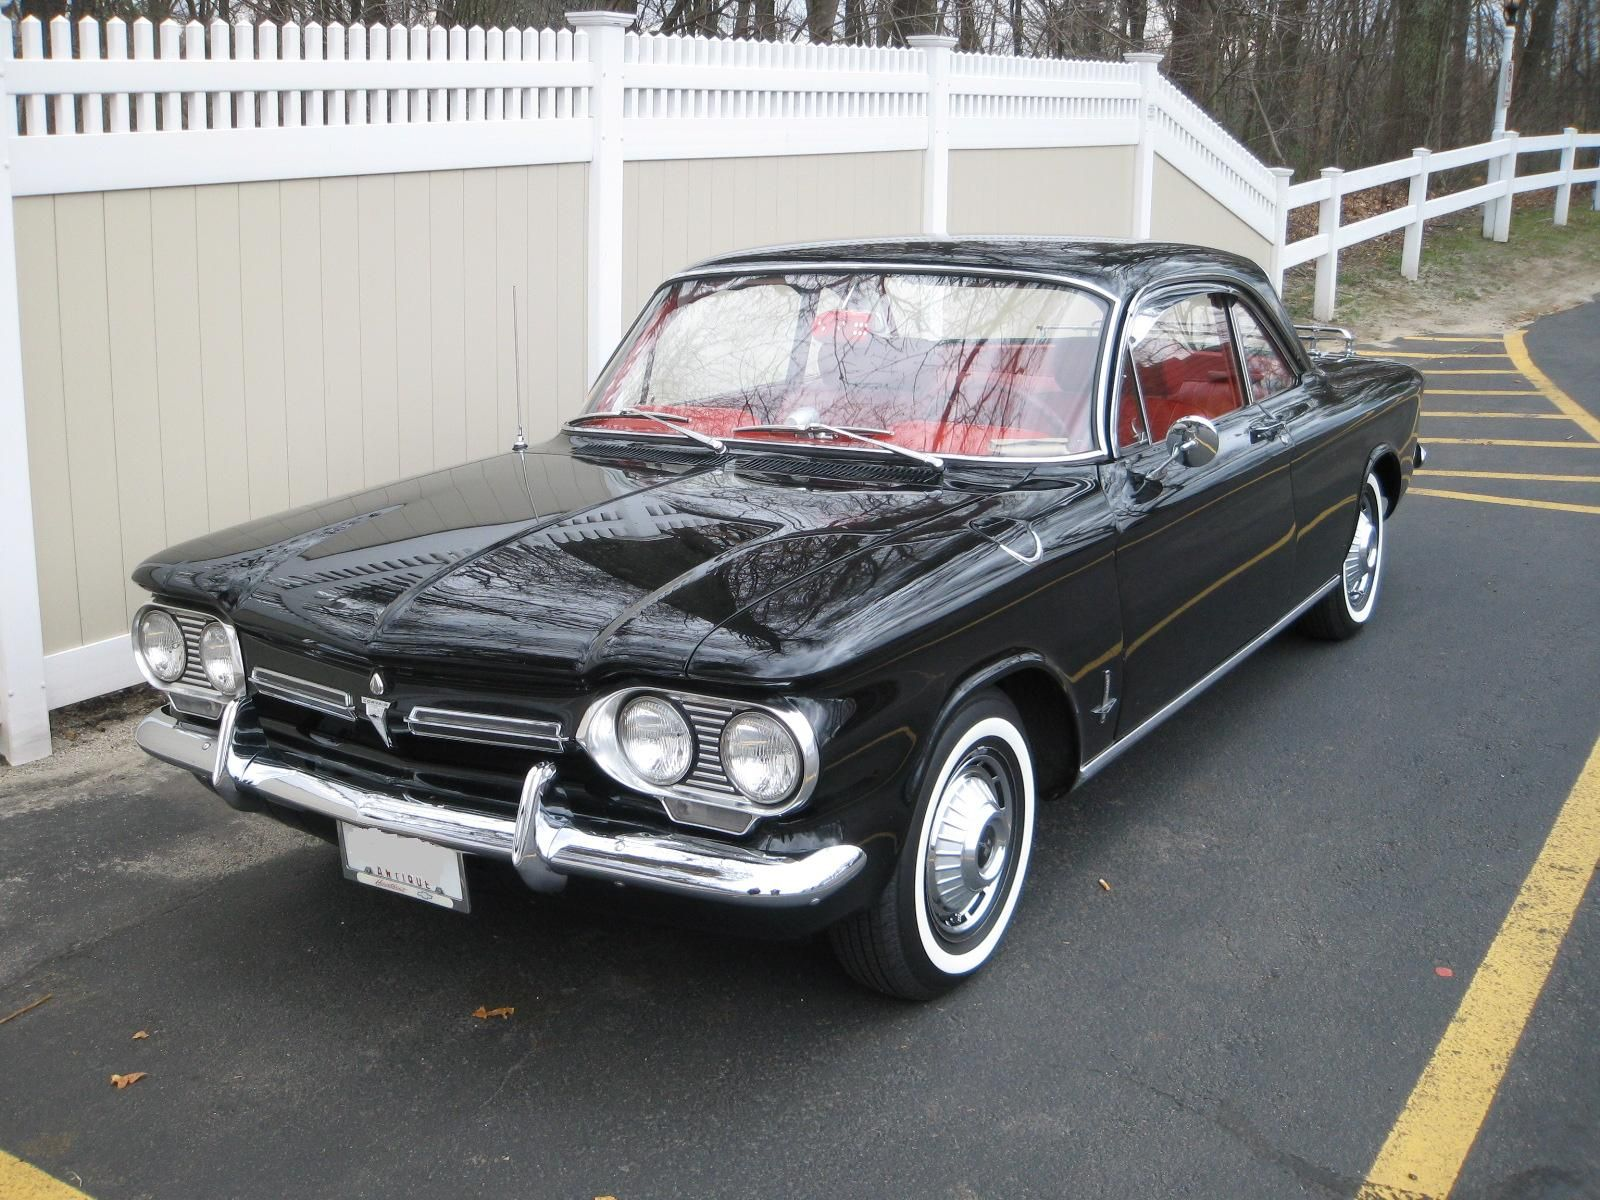 1962 Chevy Corvair American Classic Cars Chevy Corvair Chevrolet Corvair